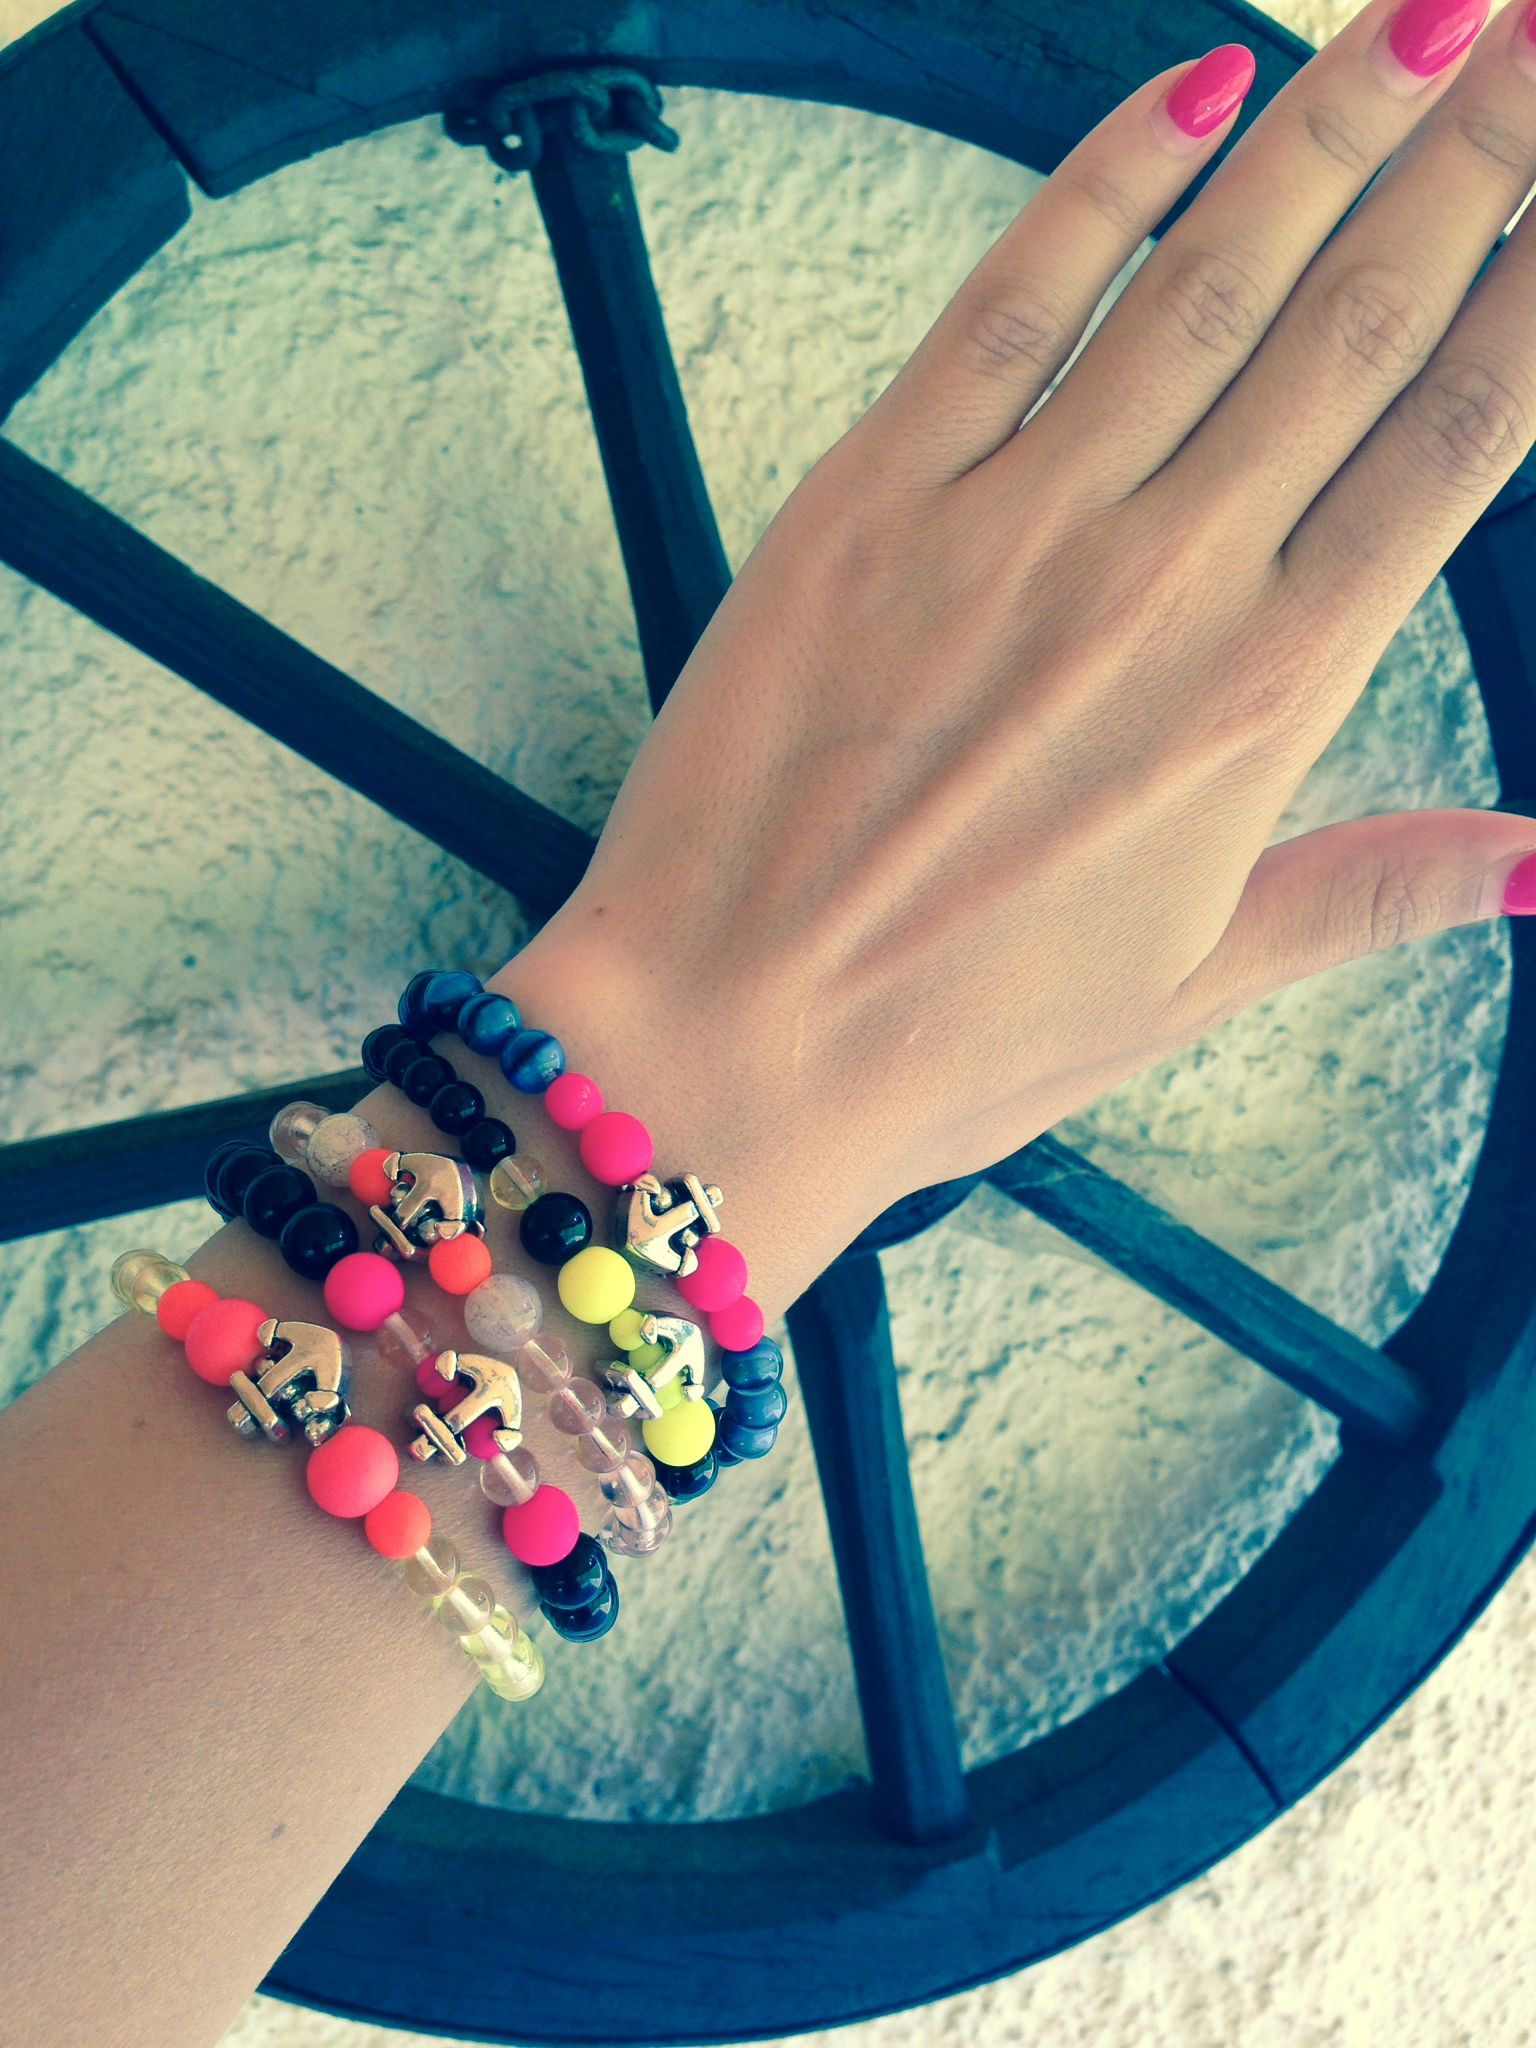 #FriendshipBracelets #BraceletsForFun #BraceletsLucky #BraceletsForAbundance #BraceletsOfLove #BraceletsForYou #Pink #DarkPink #Beads  #anchor #SailorStyle #SummerLokk #Summer #colours https://www.facebook.com/ensistore